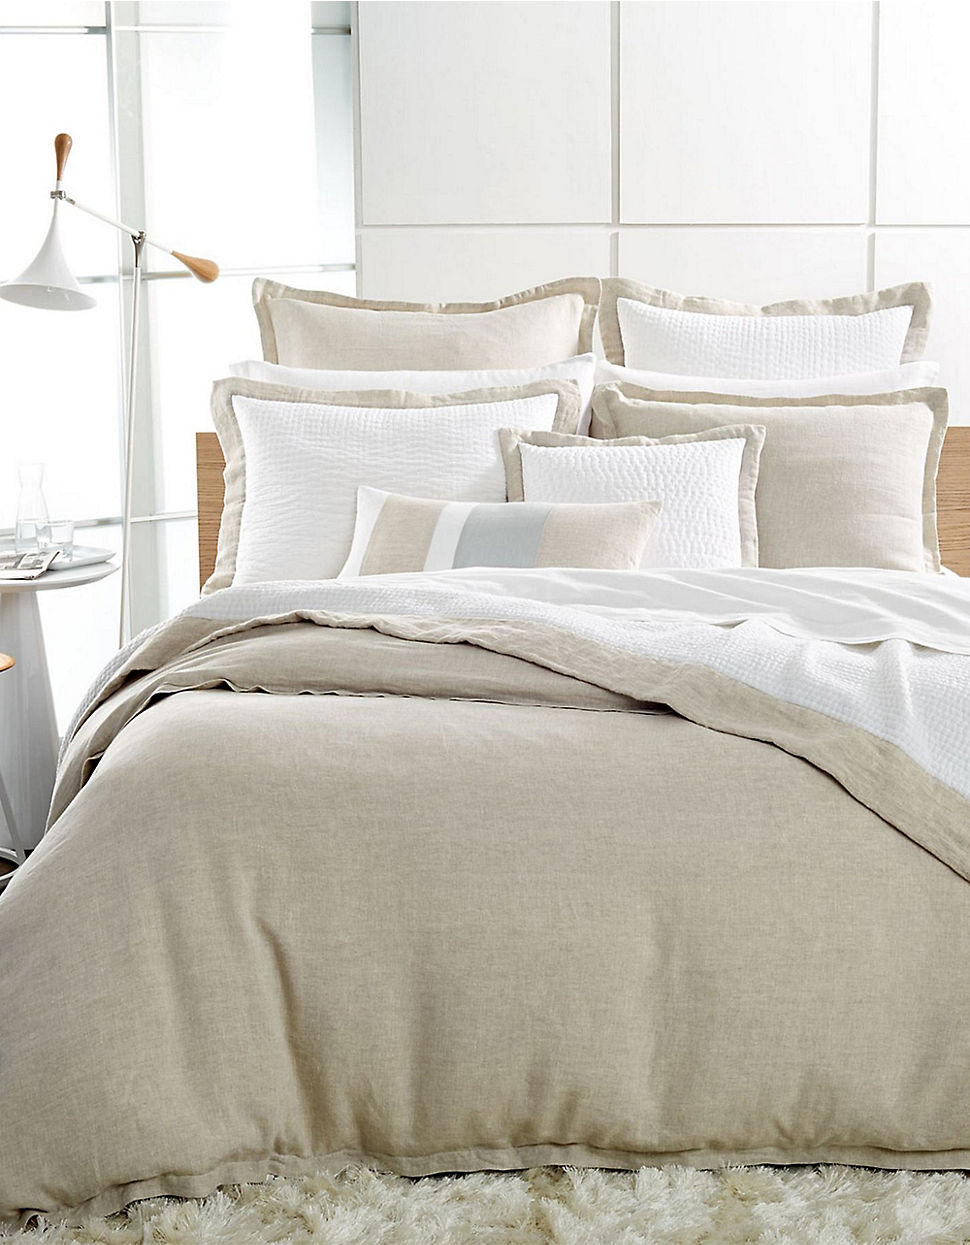 bedding sets  hudson's bay - linen bedding collection